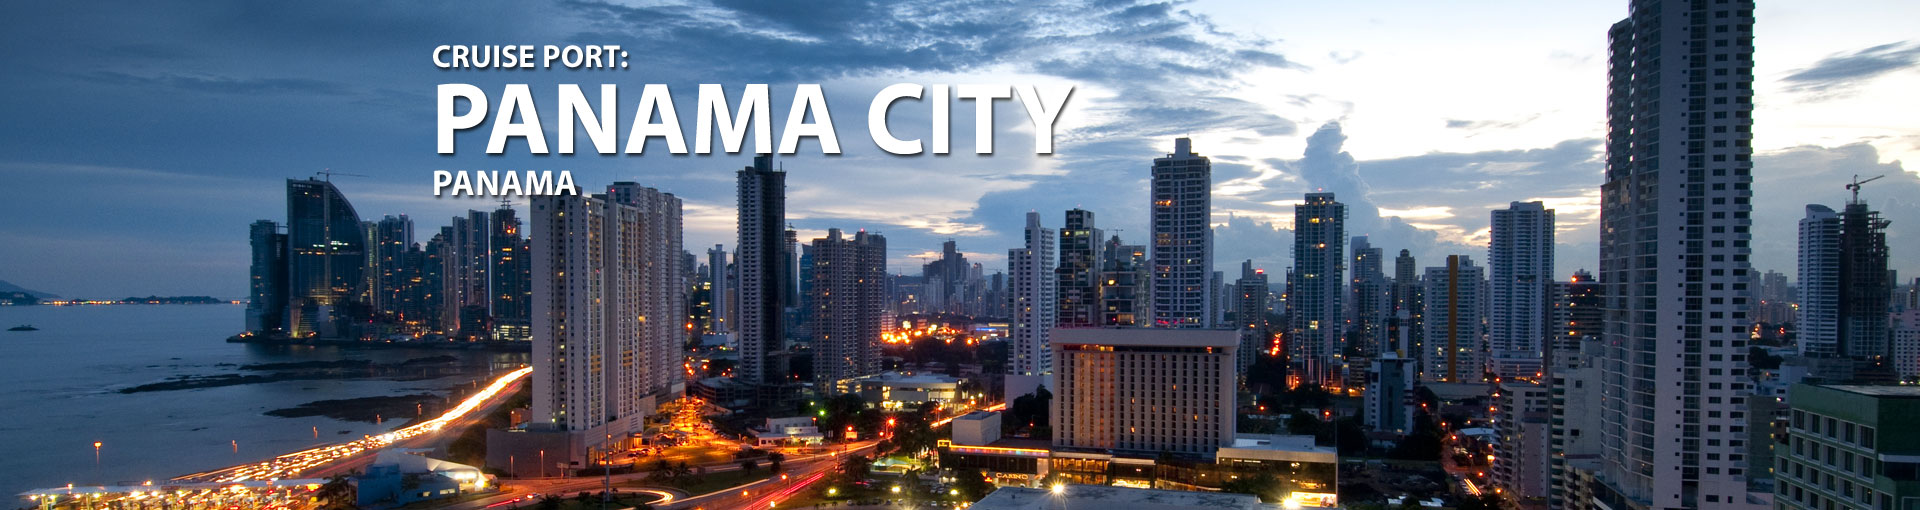 Cruises to Panama City, Panama